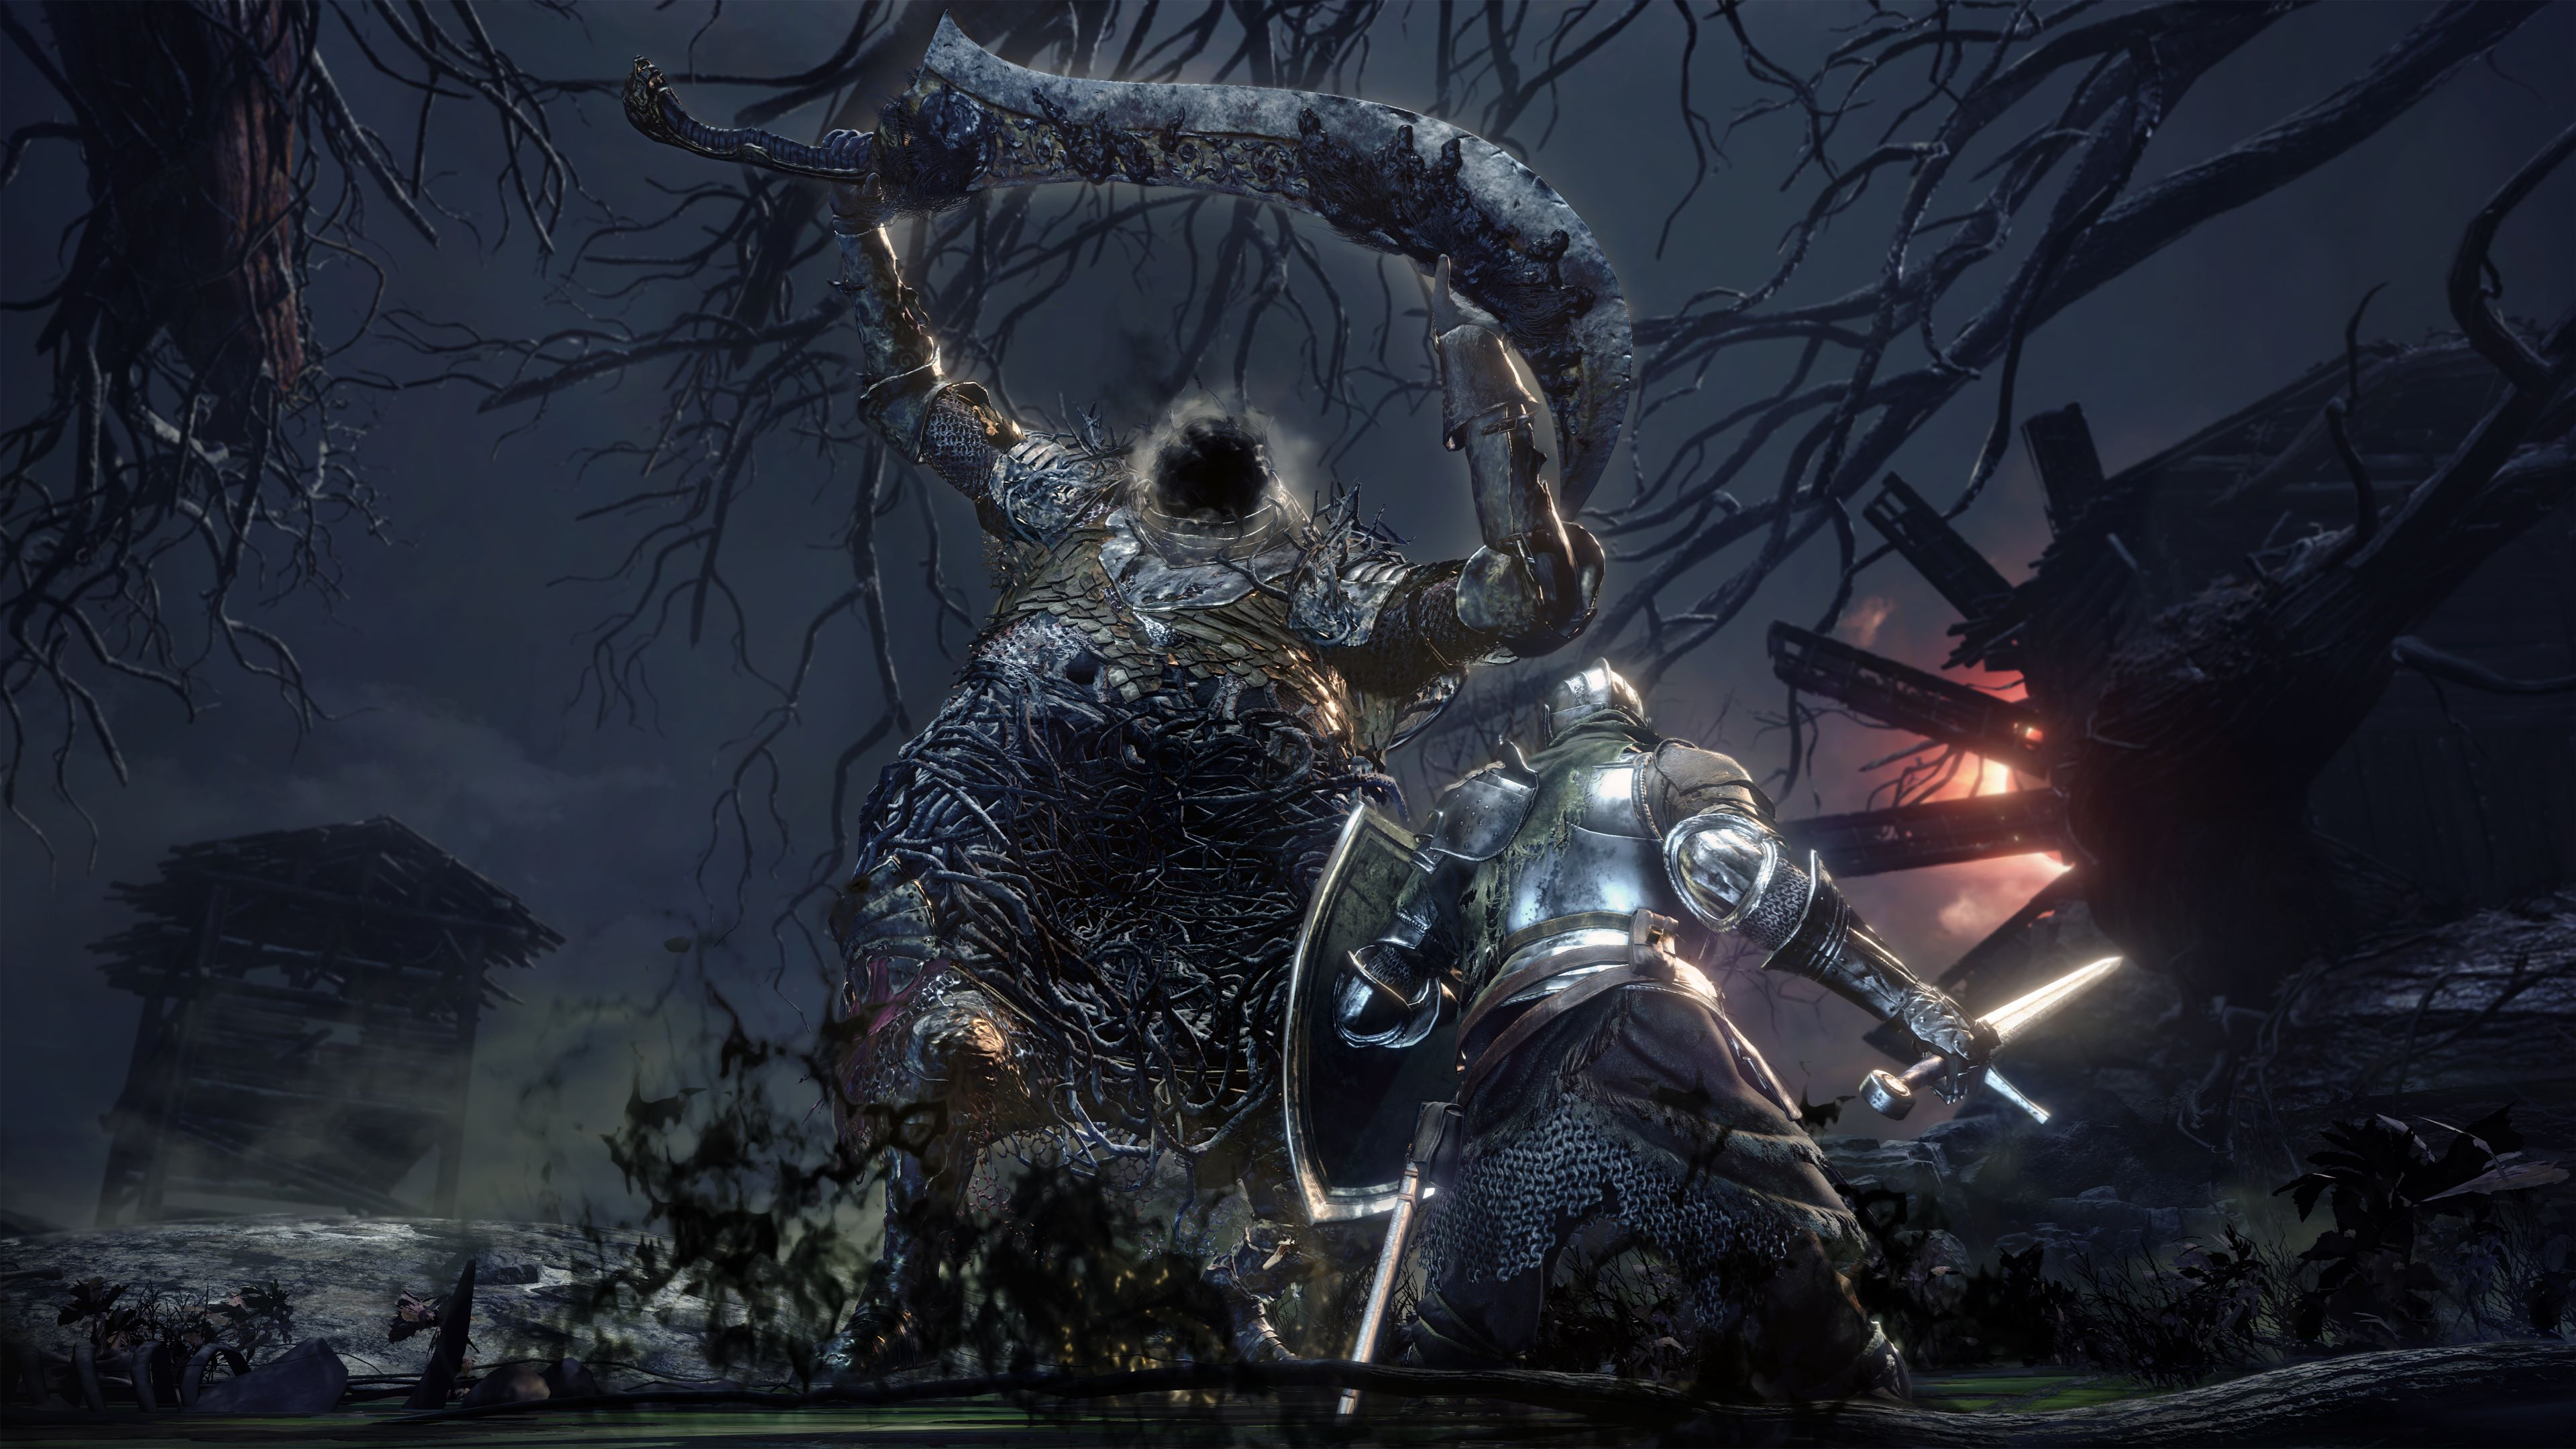 dark_souls_3_ringed_city_screen_swamp_knight_1